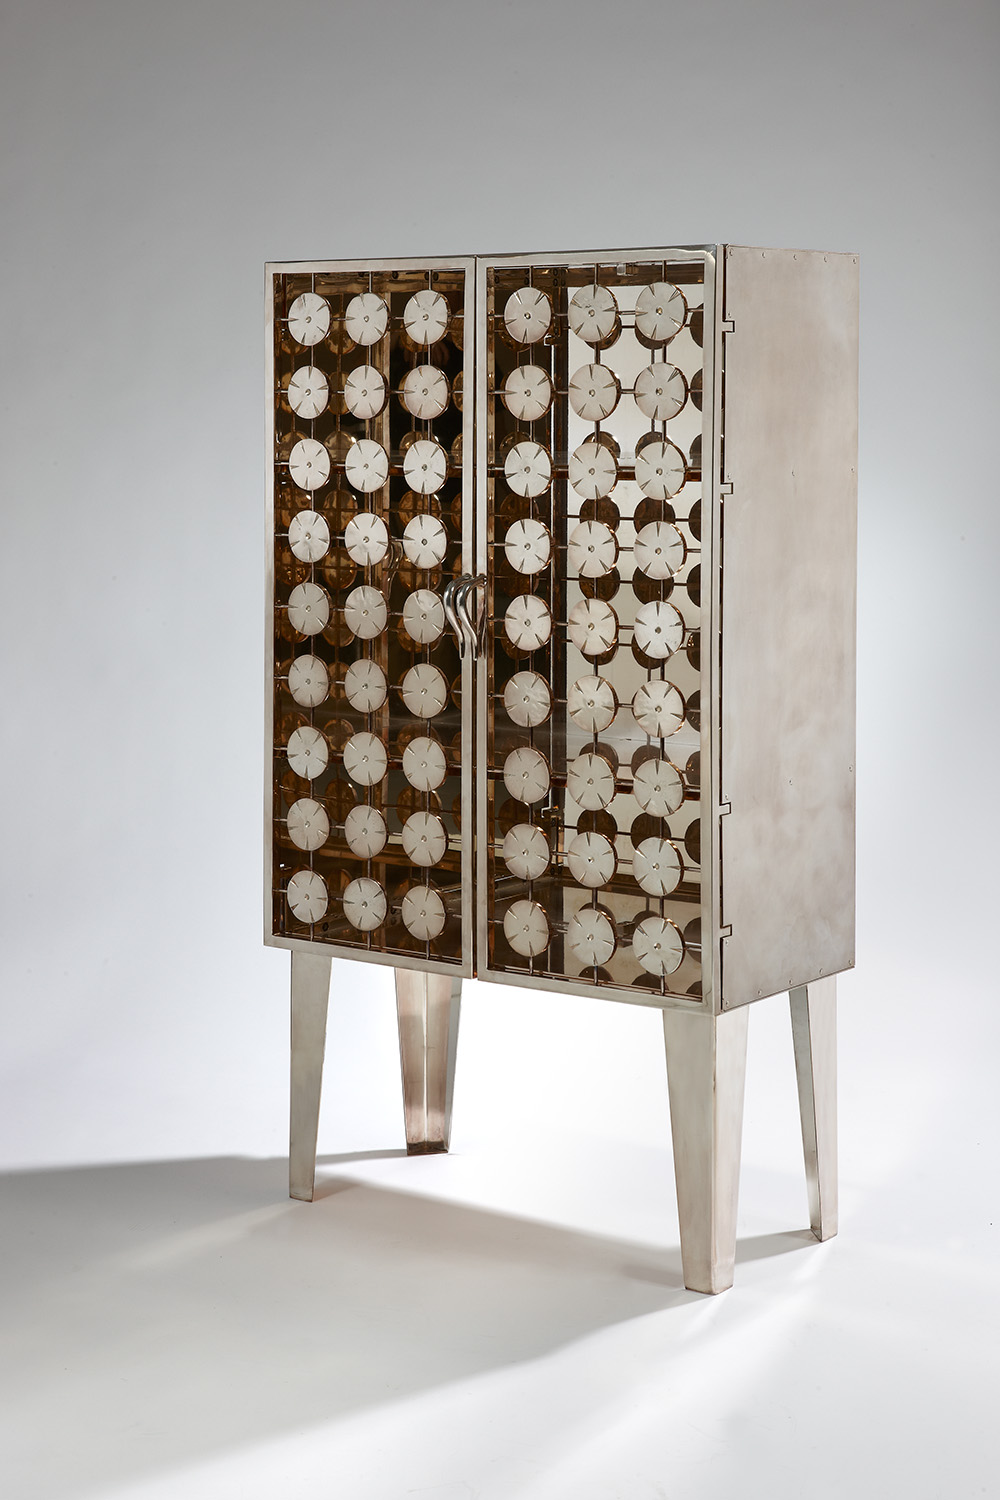 1. B&G Cabinet 'Flowers in the Air'.jpg